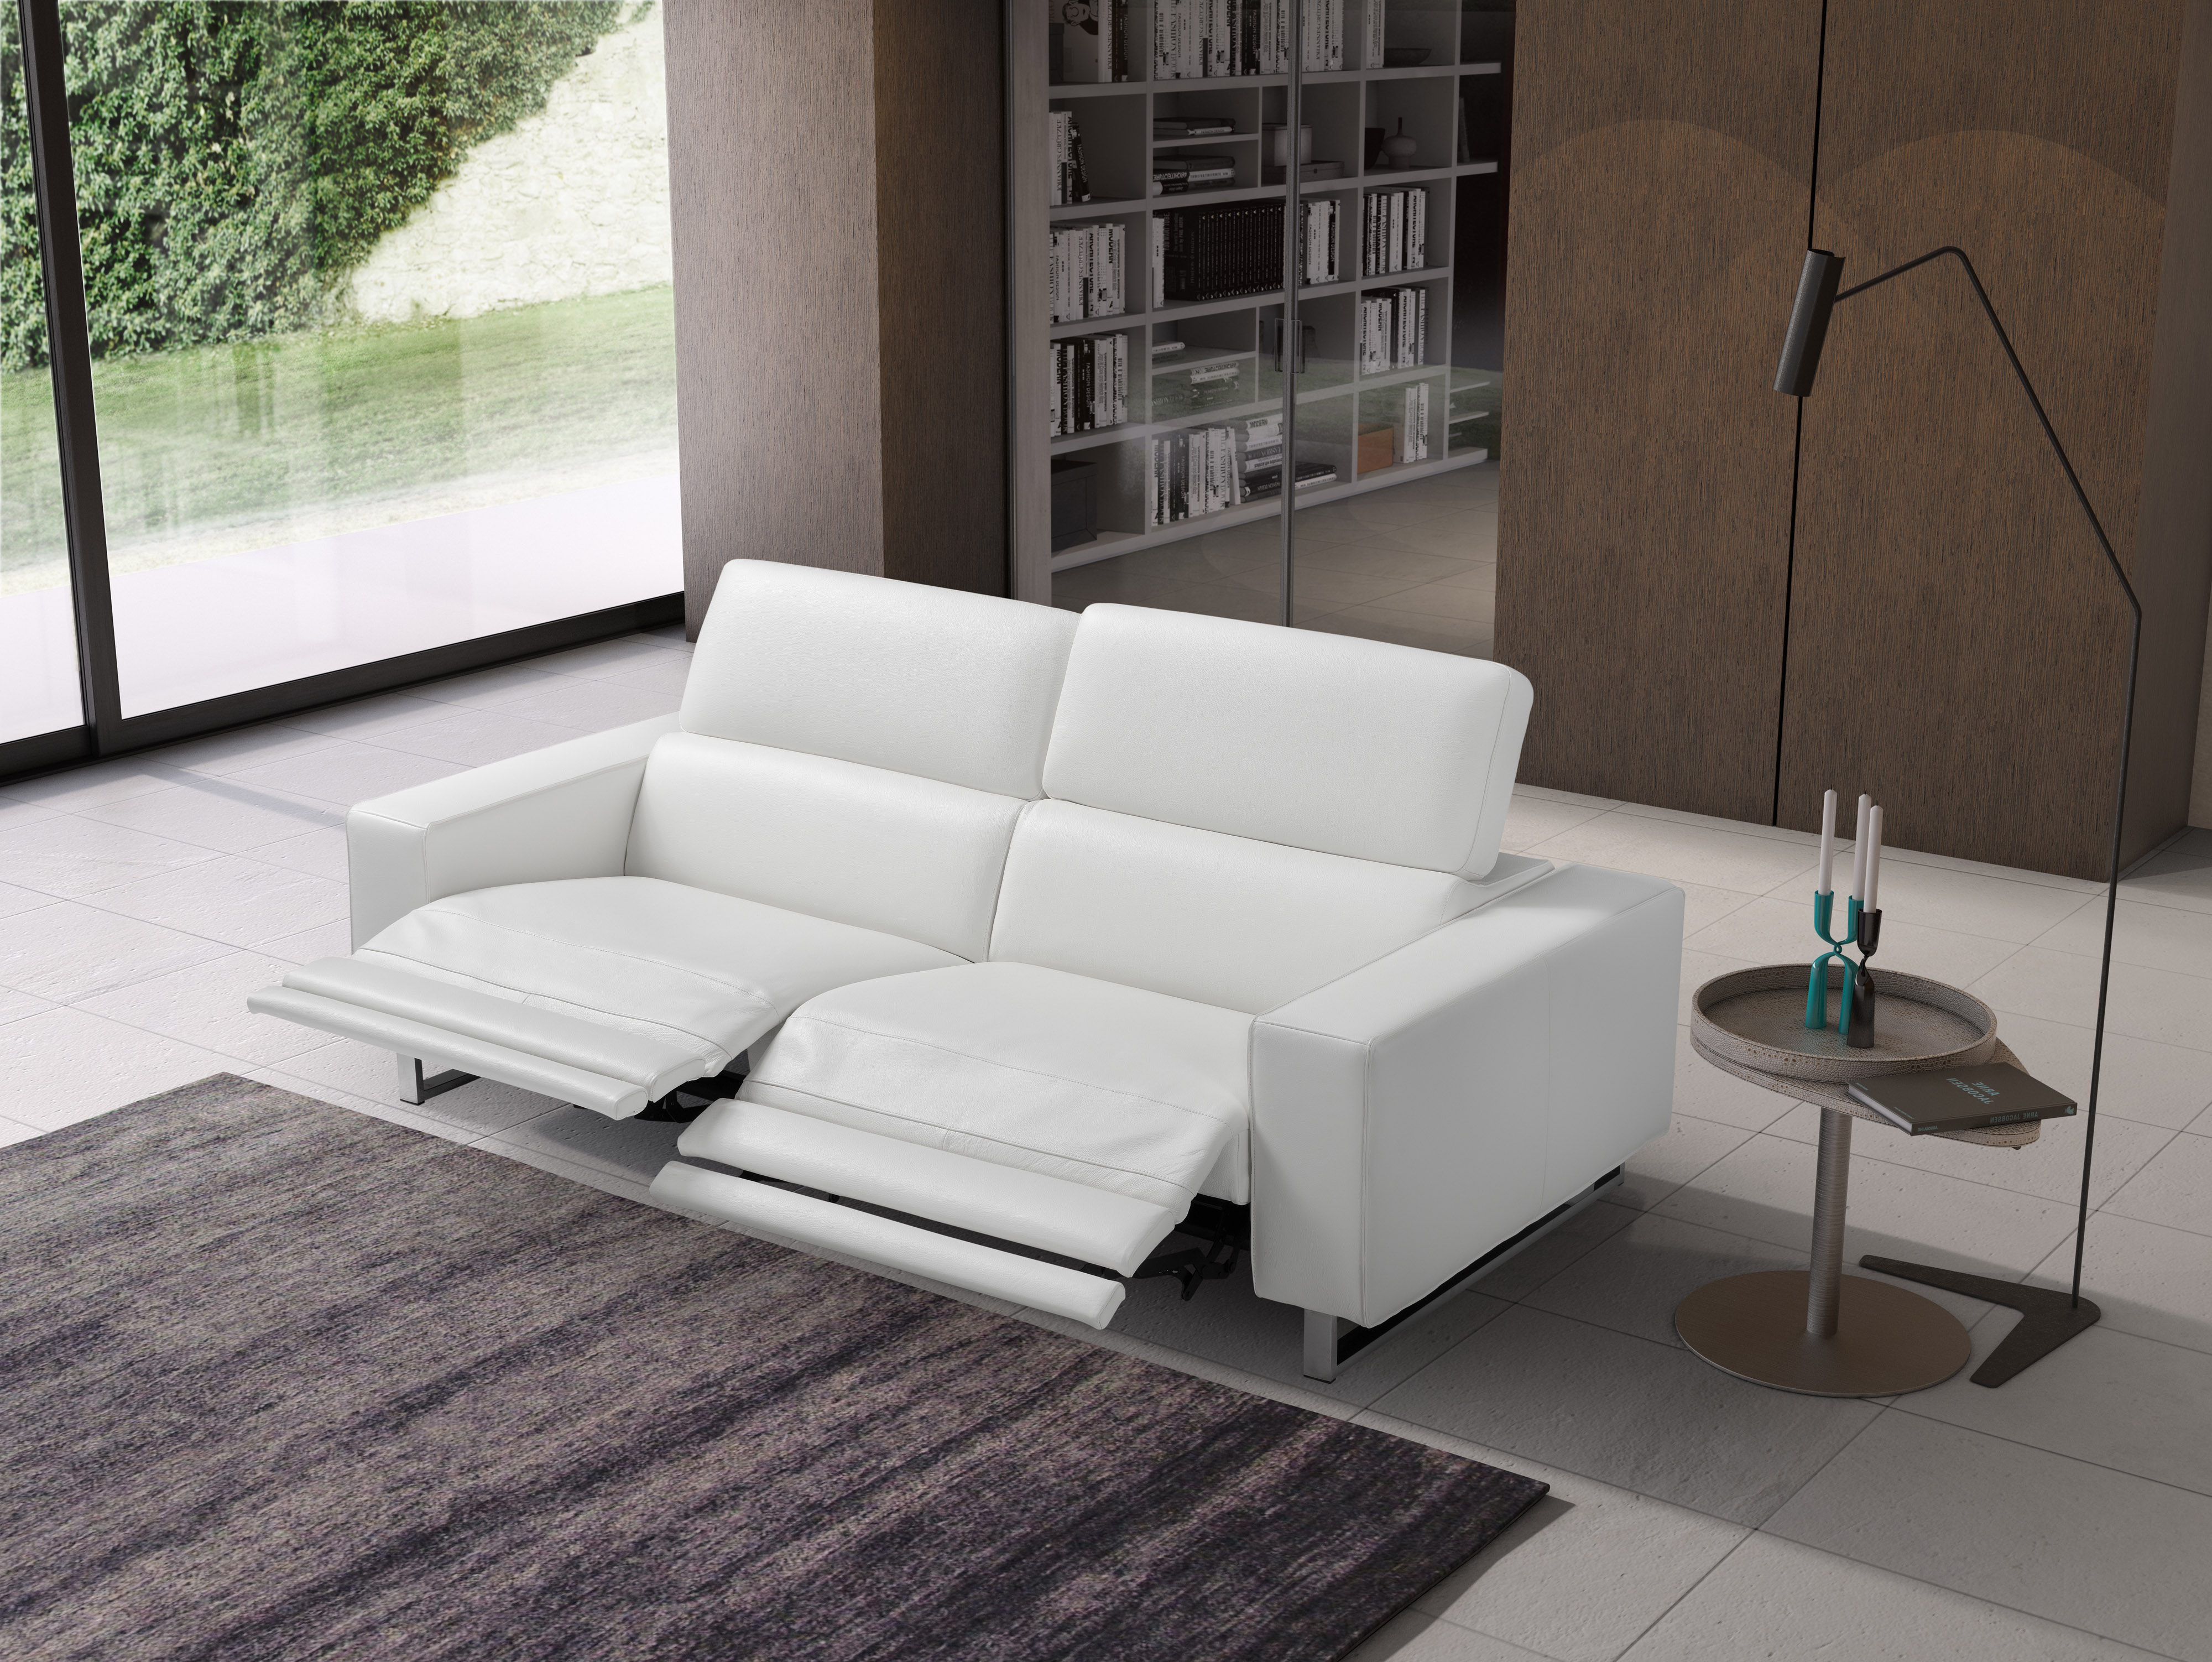 Grace White Leather Sofa Set with Adjustable Headrests